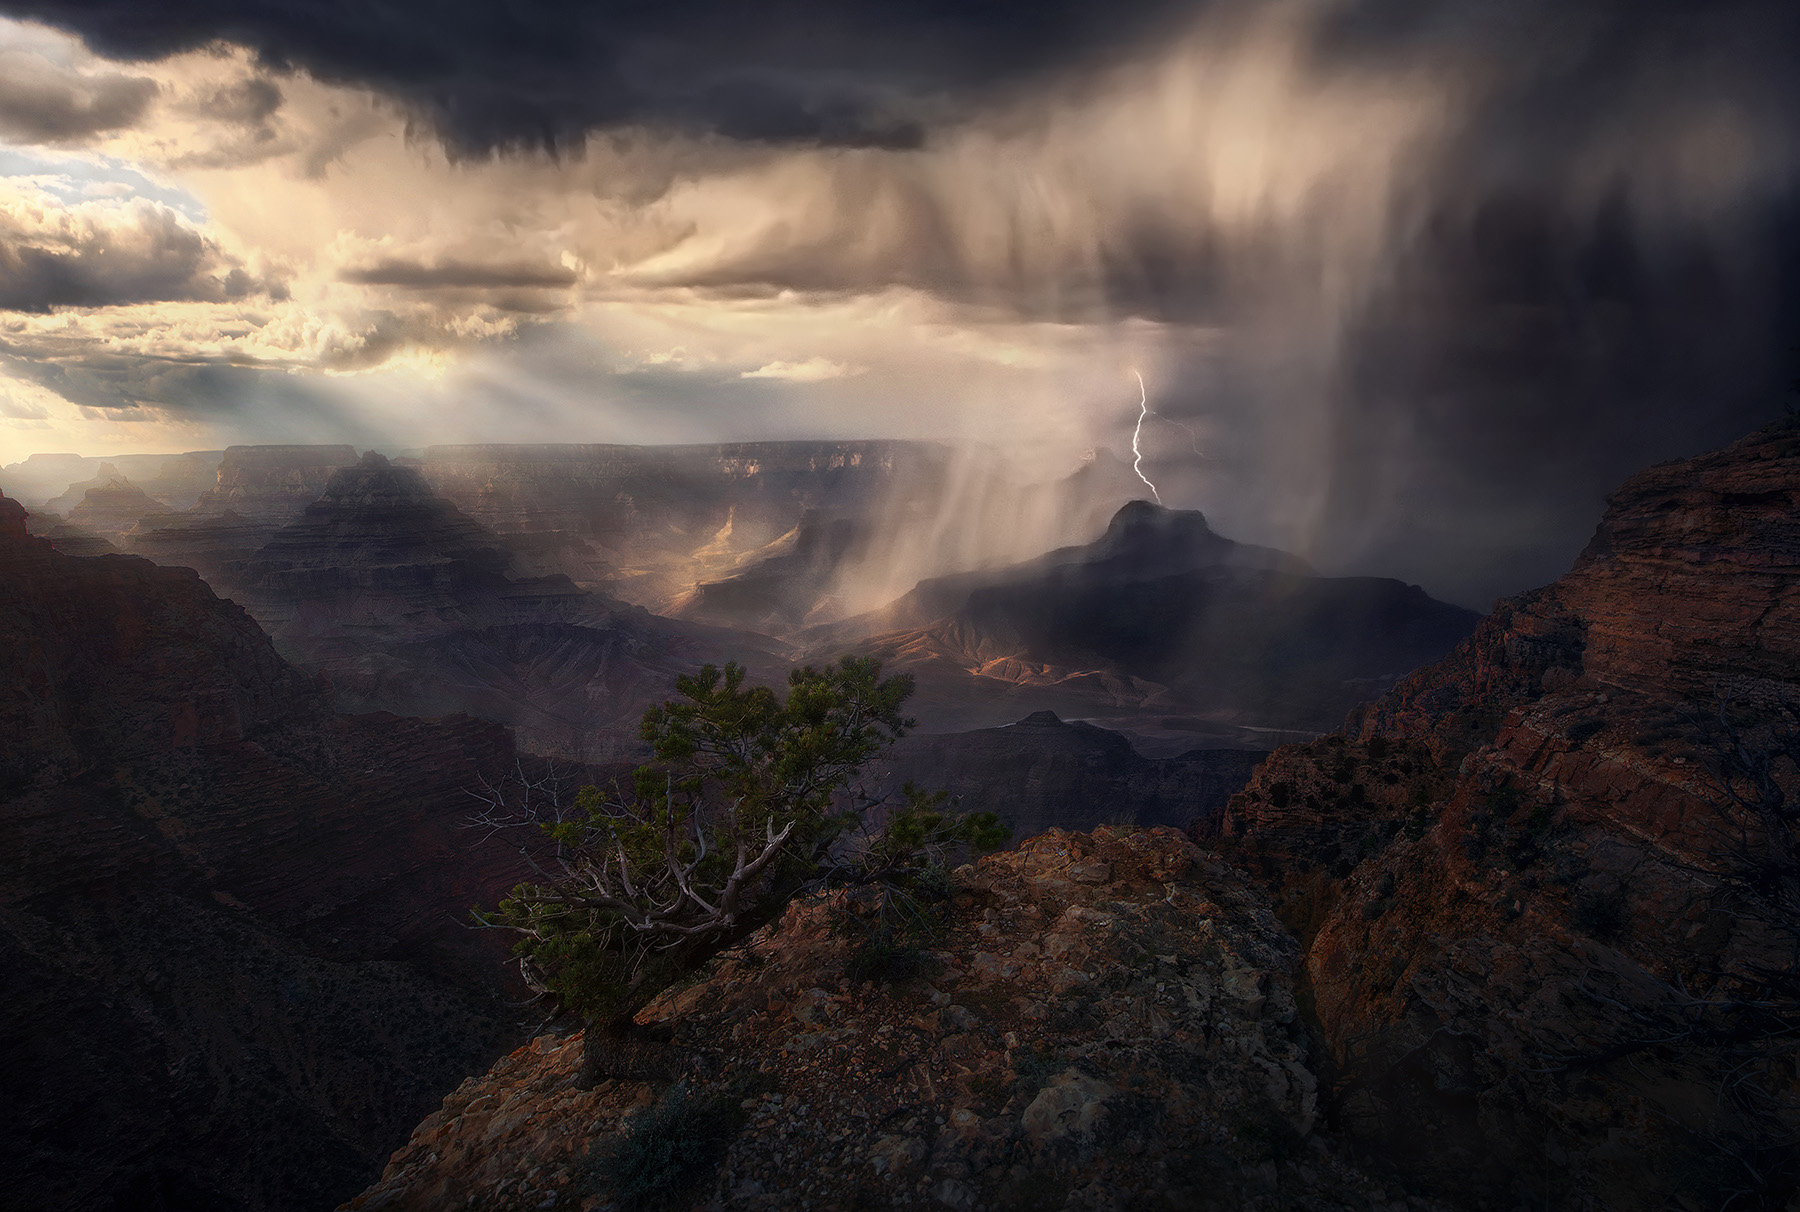 A monsoonal storm envelopes the great layers of the Grand Canyon in Arizona